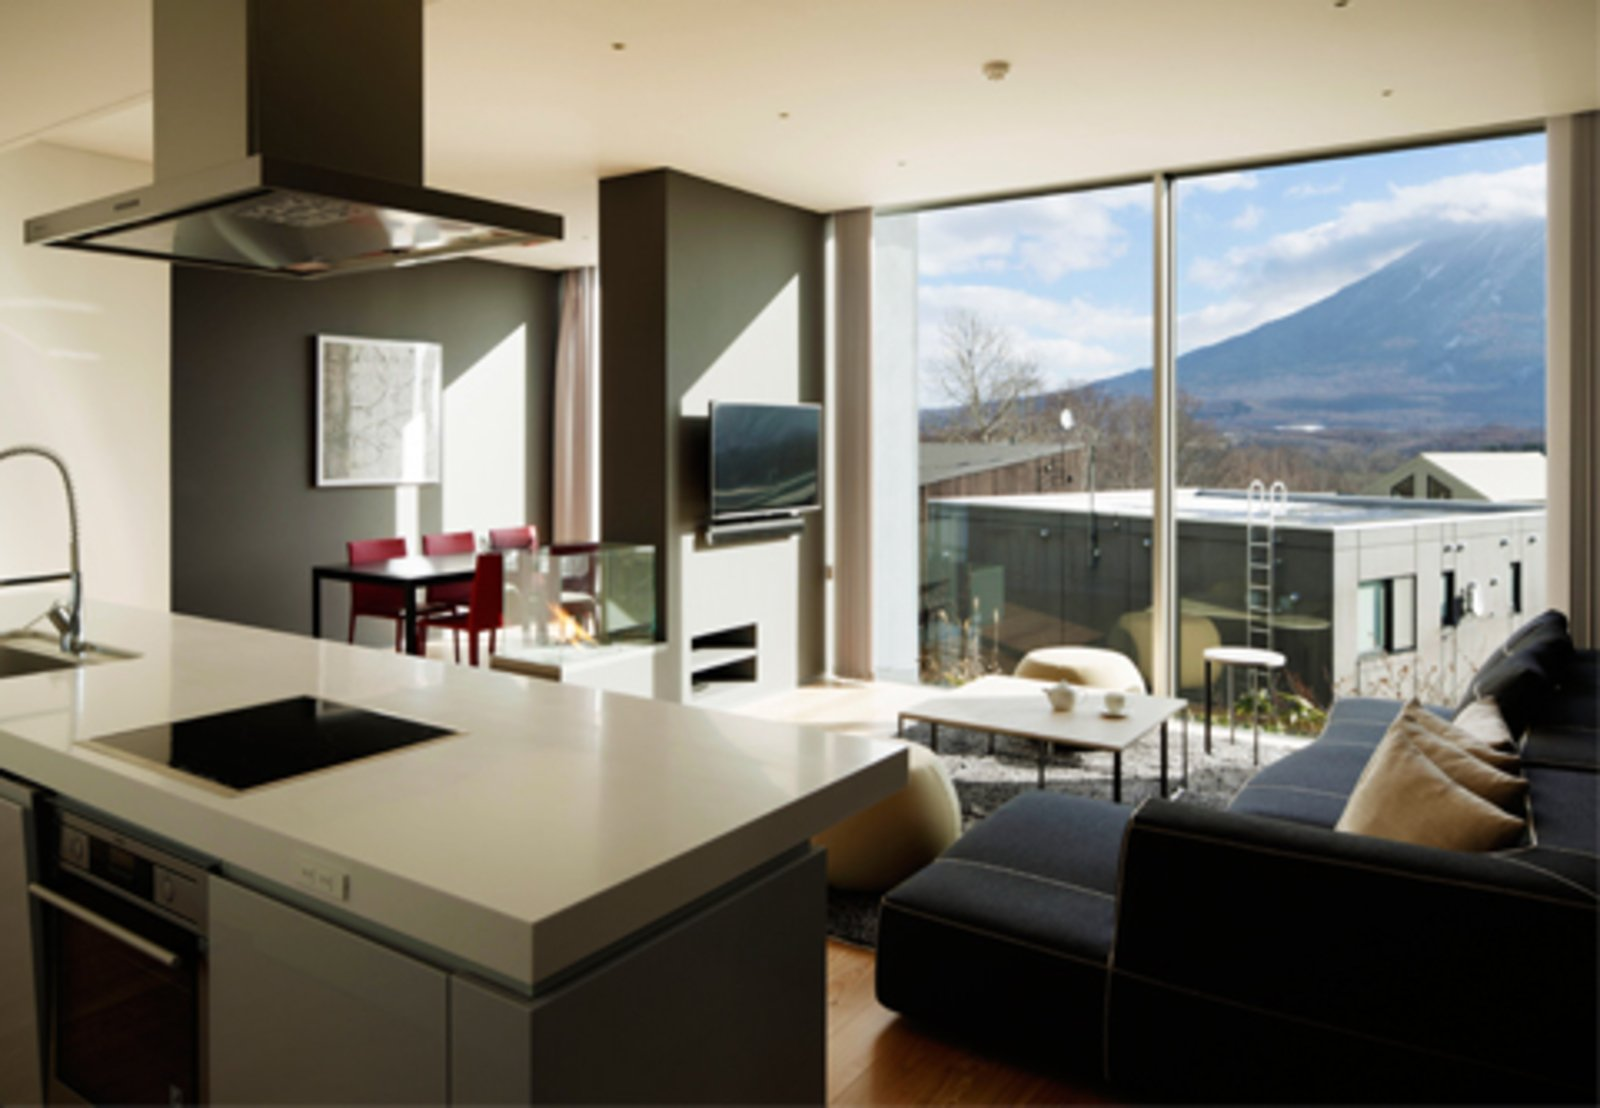 Terrazze 3 bedroom alpine view apartment 201 large